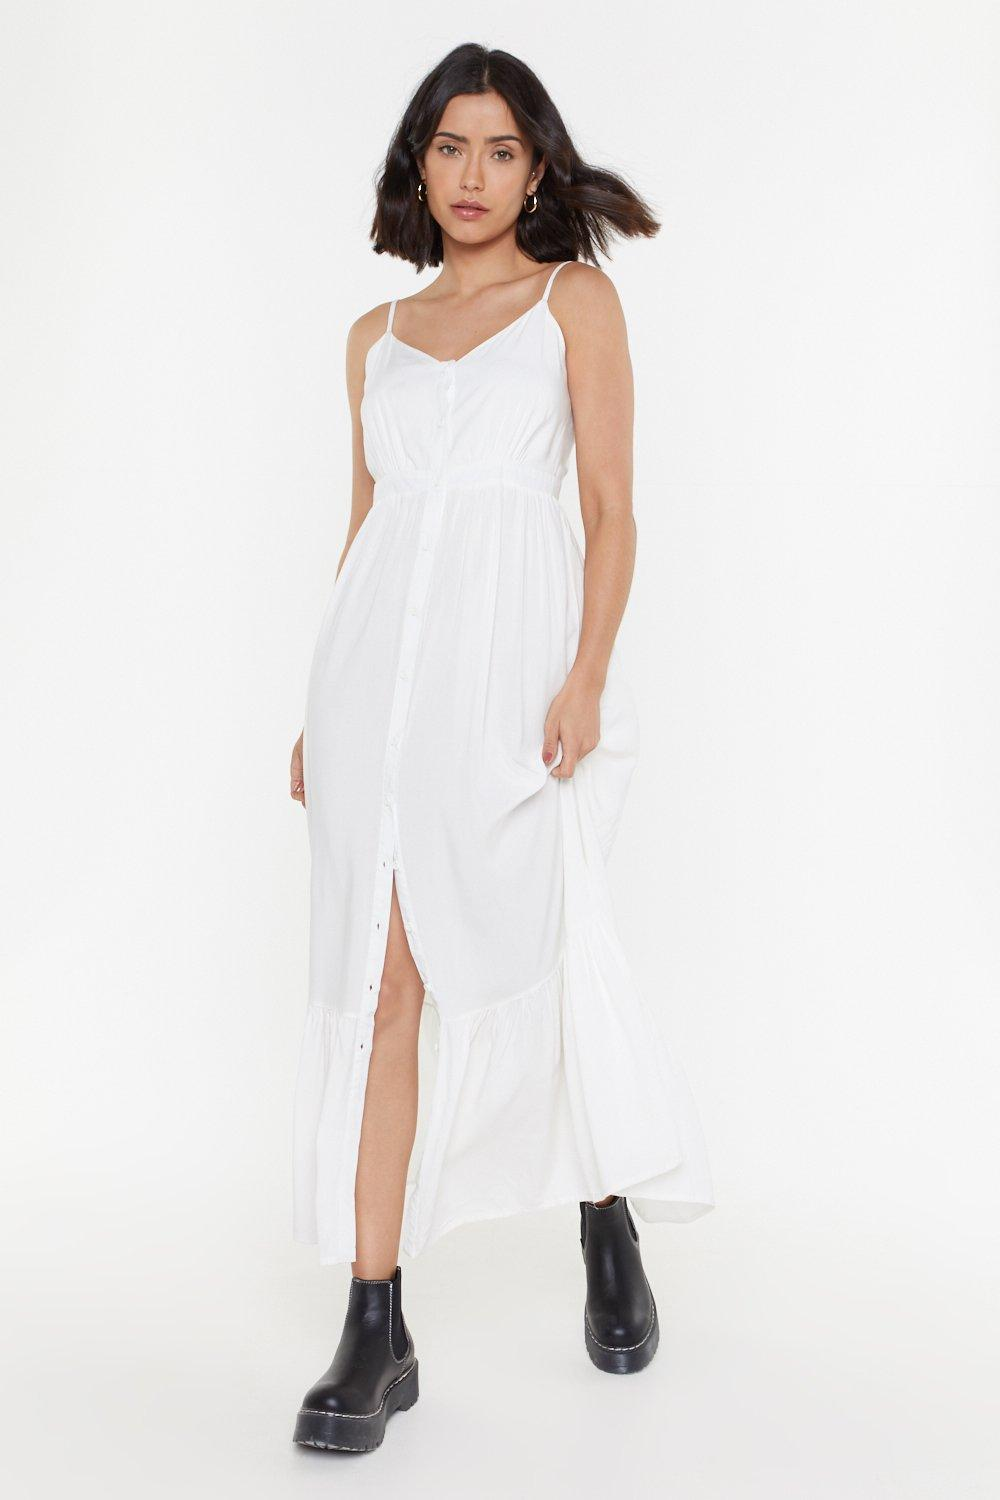 cfe7028a71fc1 Button Down Strappy Maxi Dress   Shop Clothes at Nasty Gal!